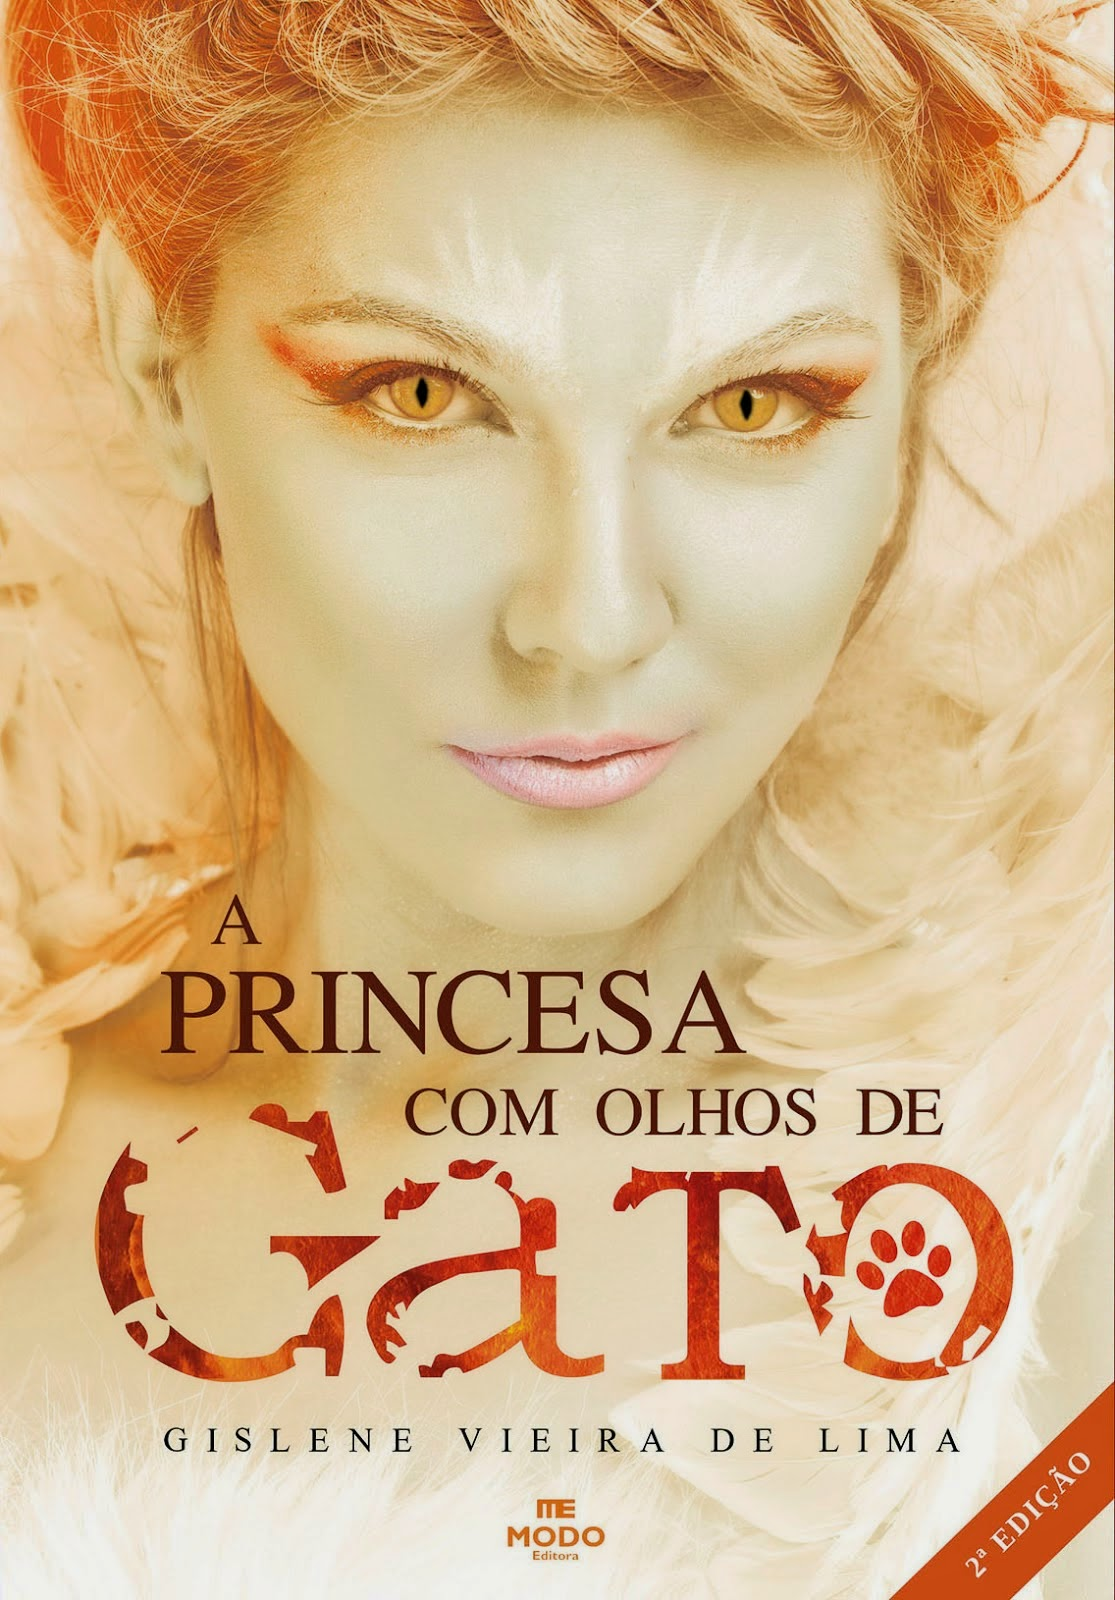 A PRINCESA COM OLHOS DE GATO